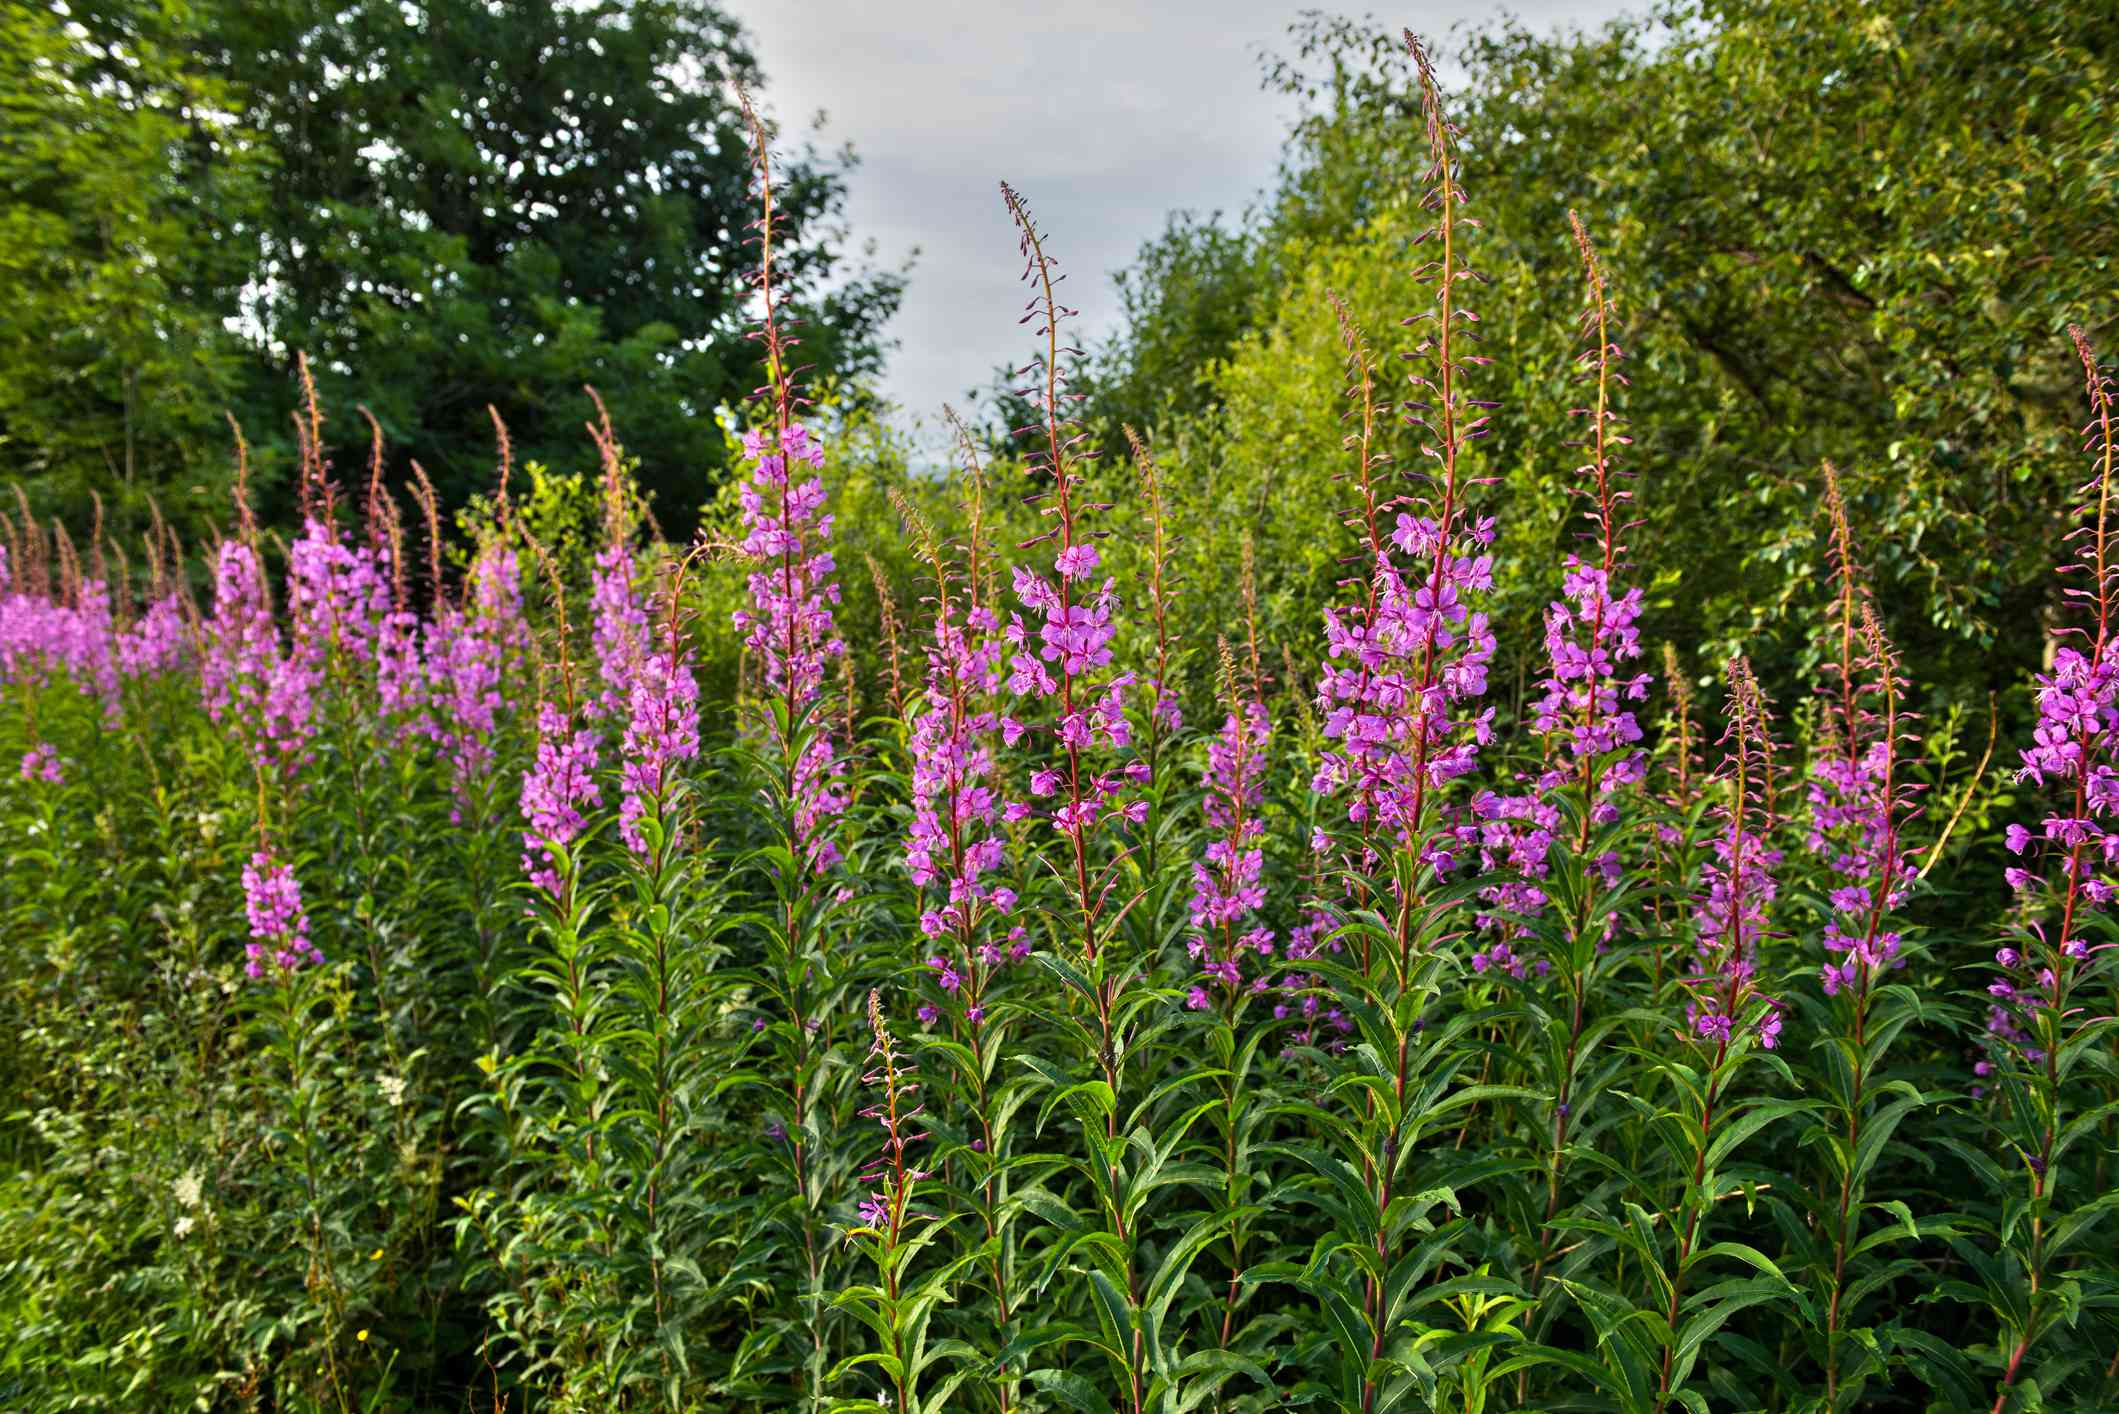 Purple lythrum flowers at Crinan Canal in Scotland